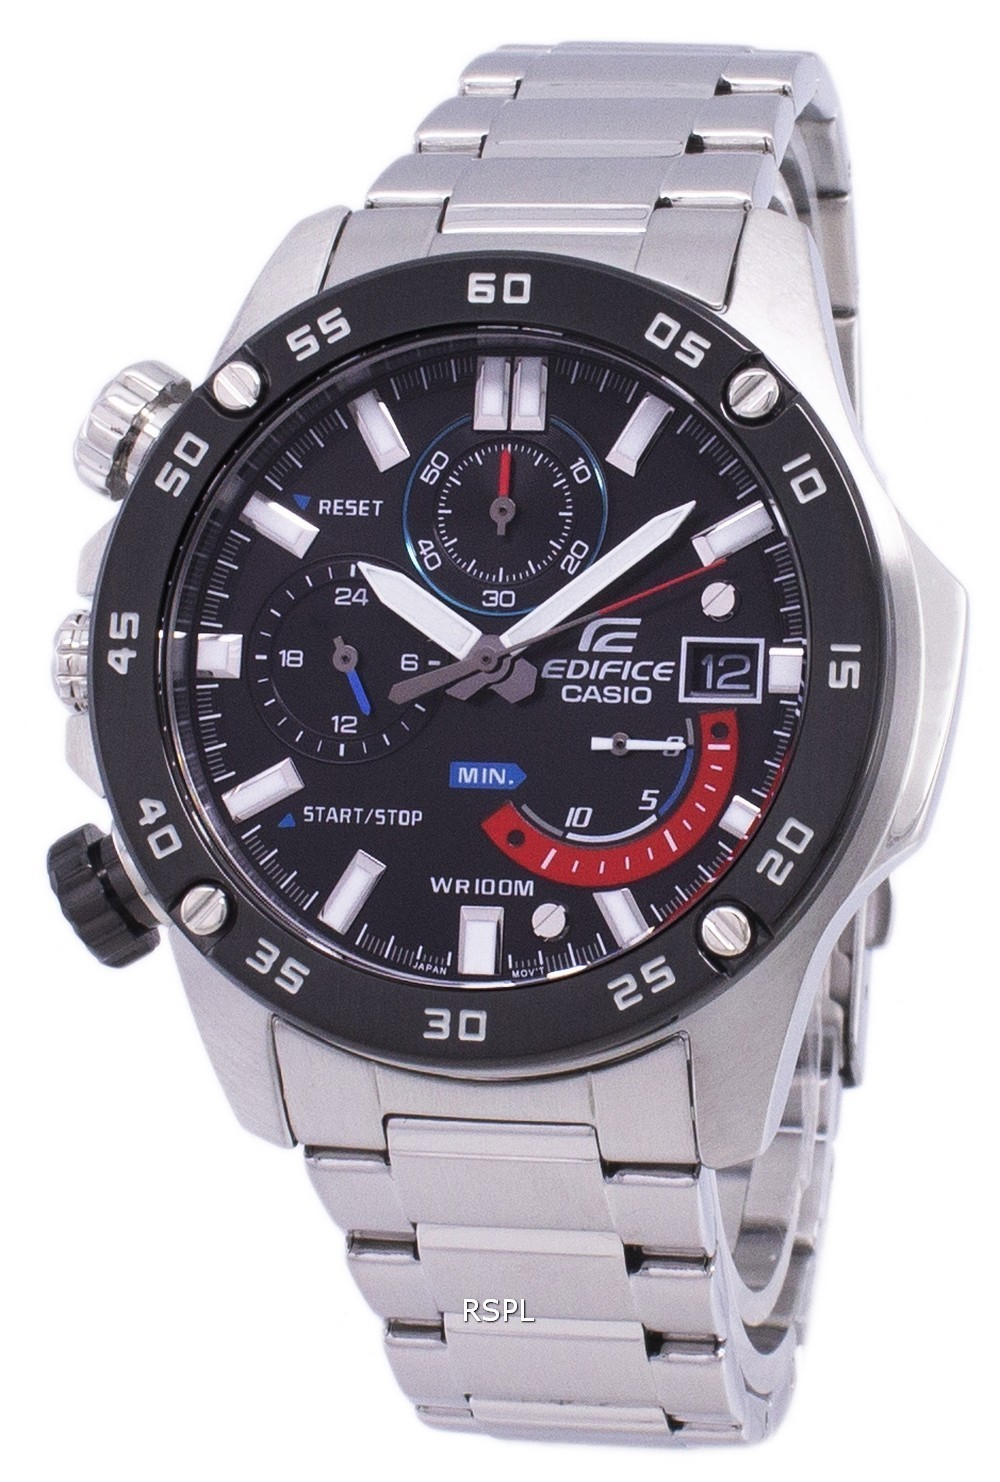 95080769fb8 Casio Edifice Chronograph Quartz EFR-558DB-1AV EFR558DB-1AV Men s Watch